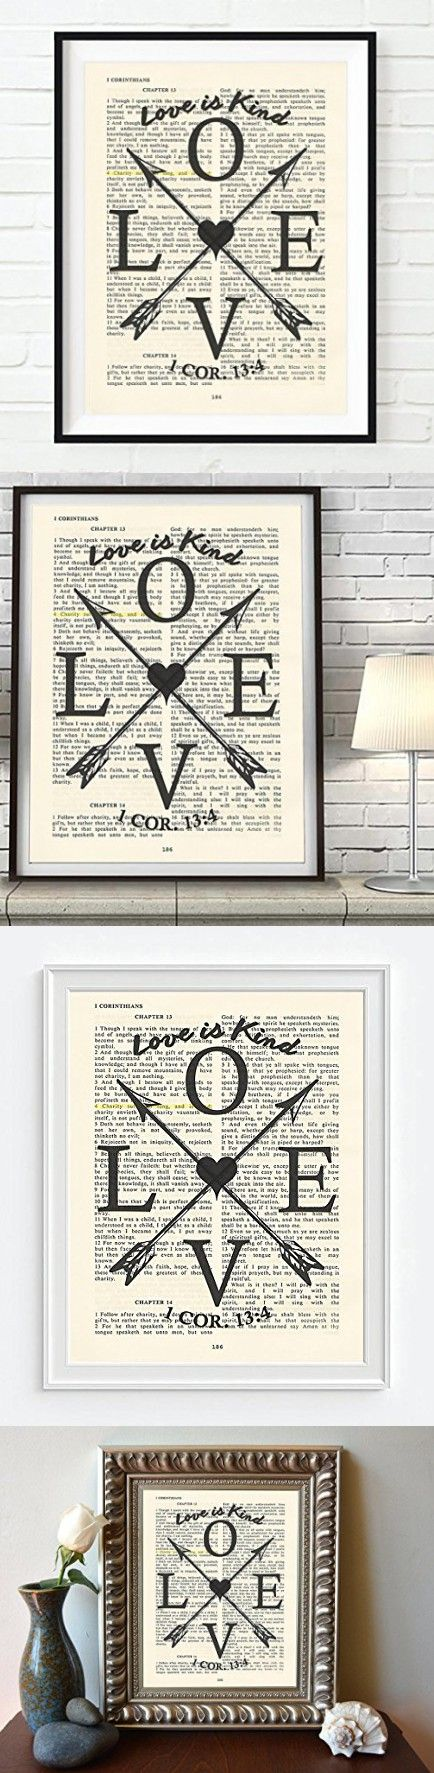 Vintage Bible verse scripture - Upcycled page - LOVE is Kind - 1 Corinthians 13: 4 Christian ART PRINT, UNFRAMED, wedding anniversary dictionary wall & home decor poster, Inspirational gift